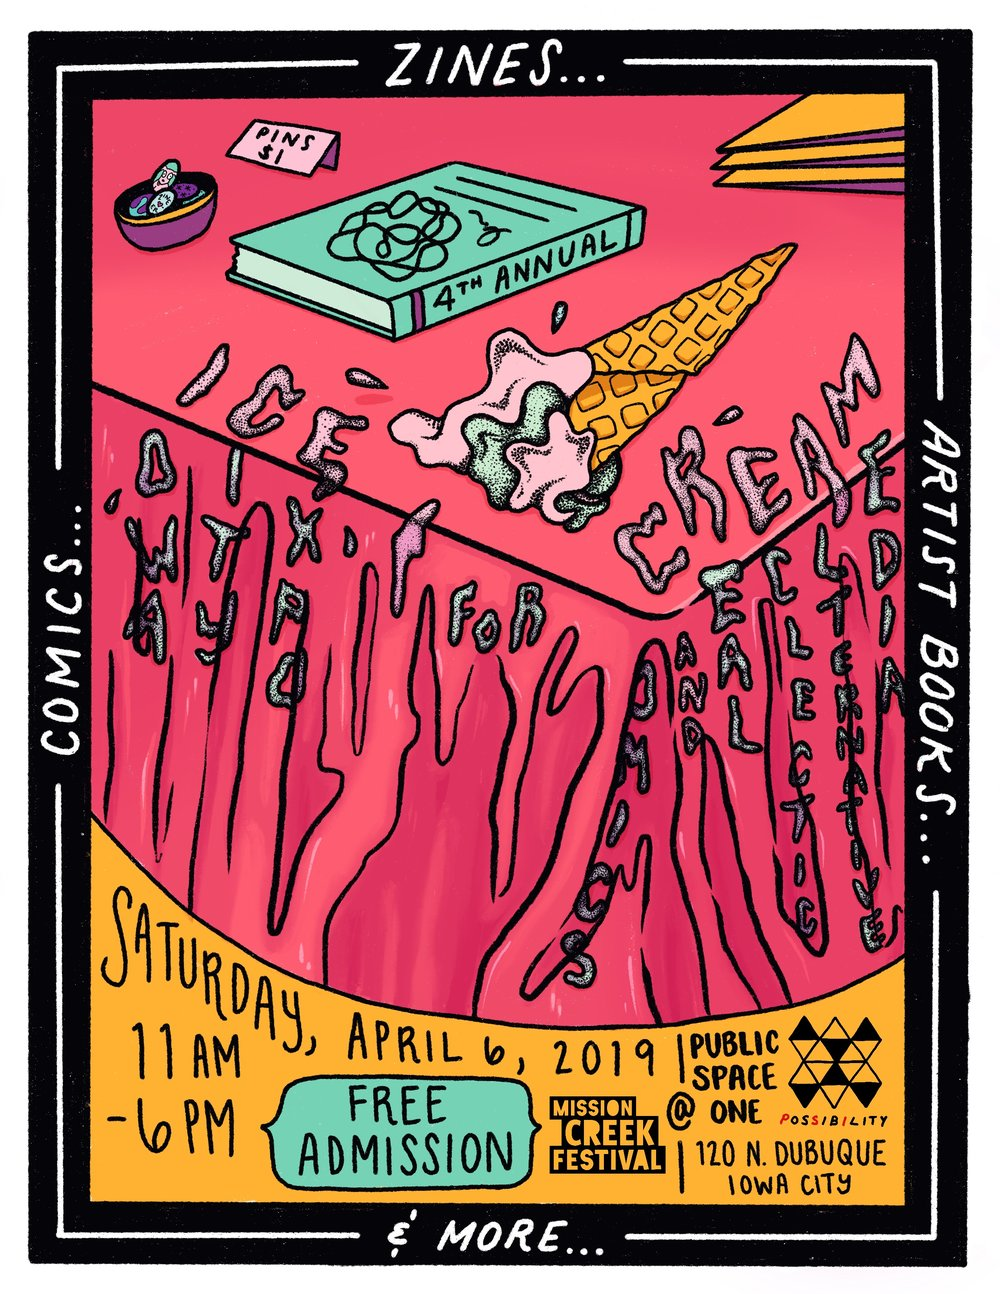 the 4th annual ICE CREAM (IC Expo for Comics and Real Eclectic Alternative Media) is April 6!